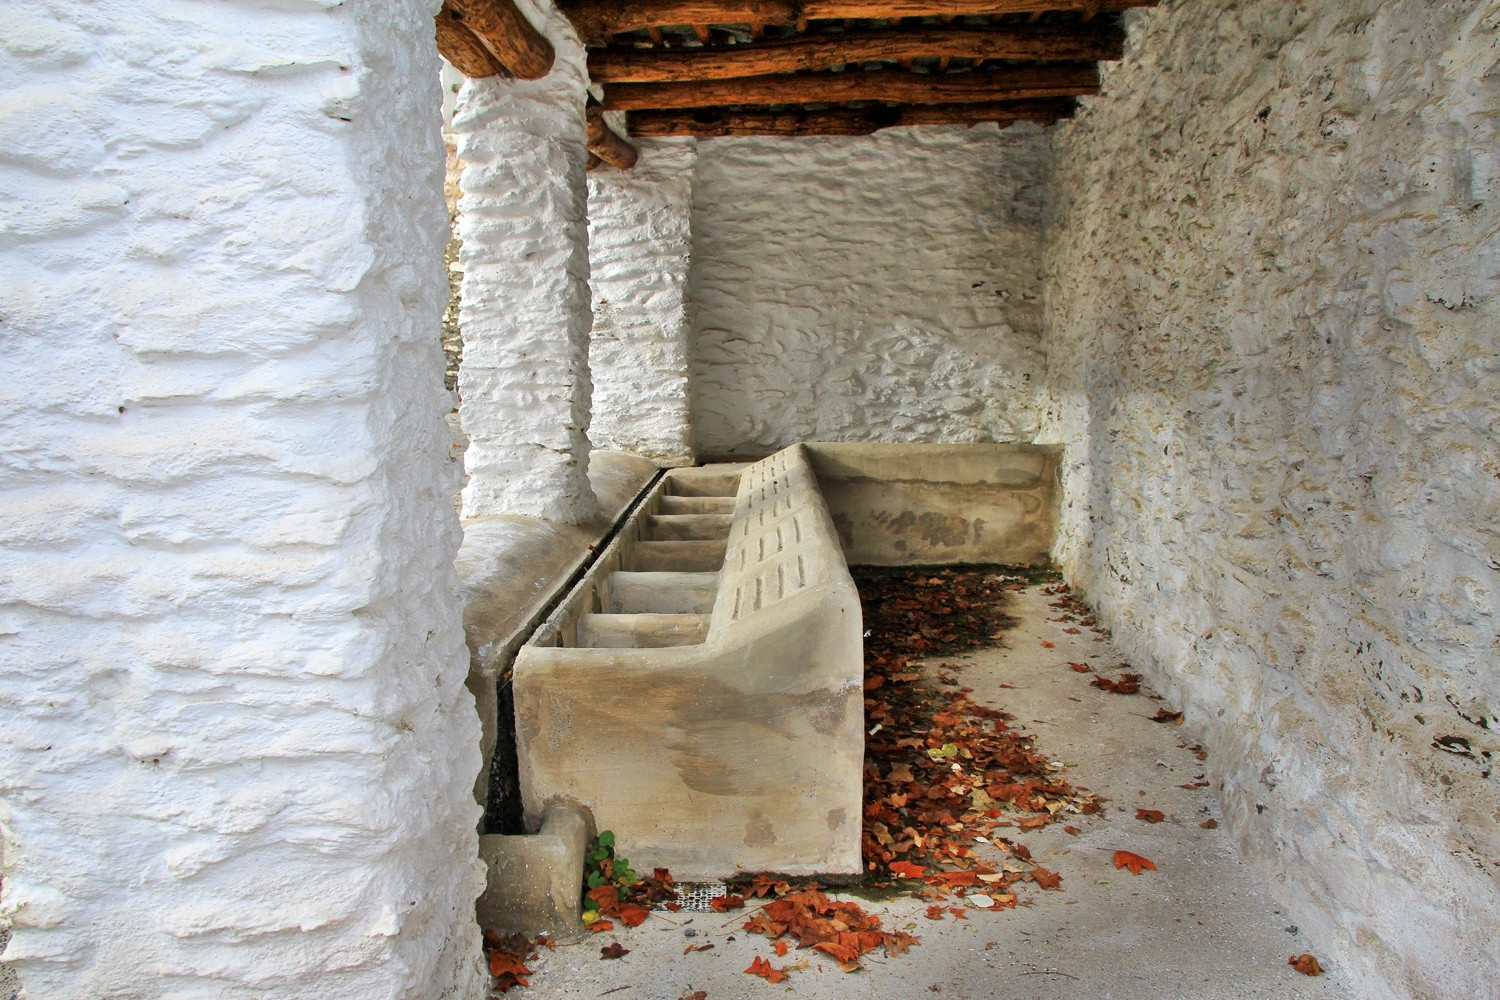 The Washing Sinks in Pítres